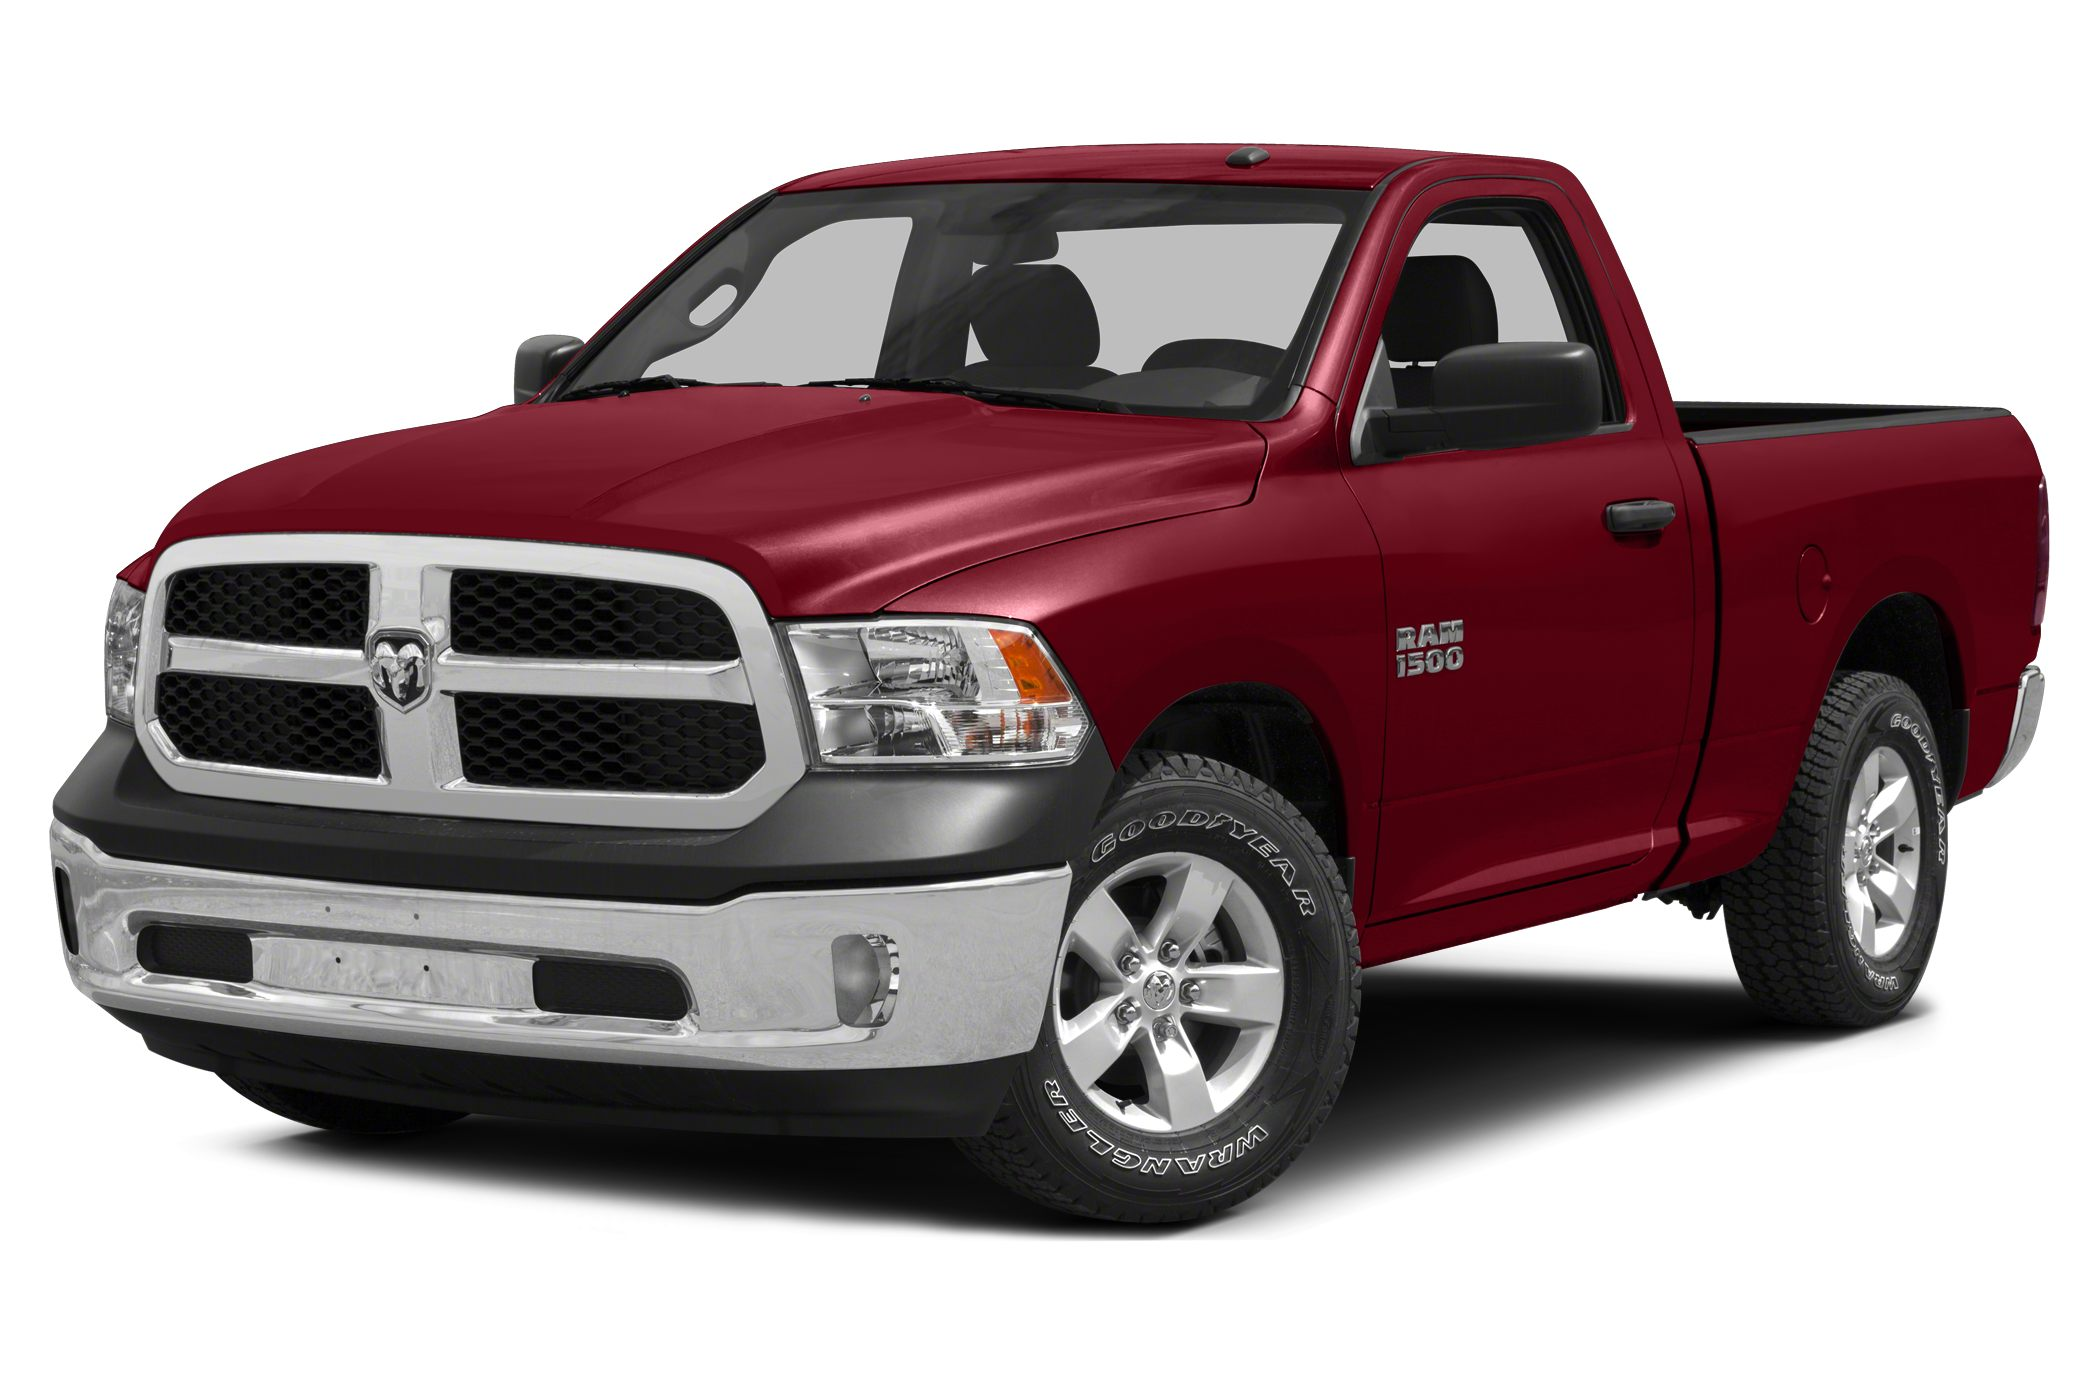 2015 RAM 1500 Tradesman/Express Crew Cab Pickup for sale in Clanton for $39,265 with 5 miles